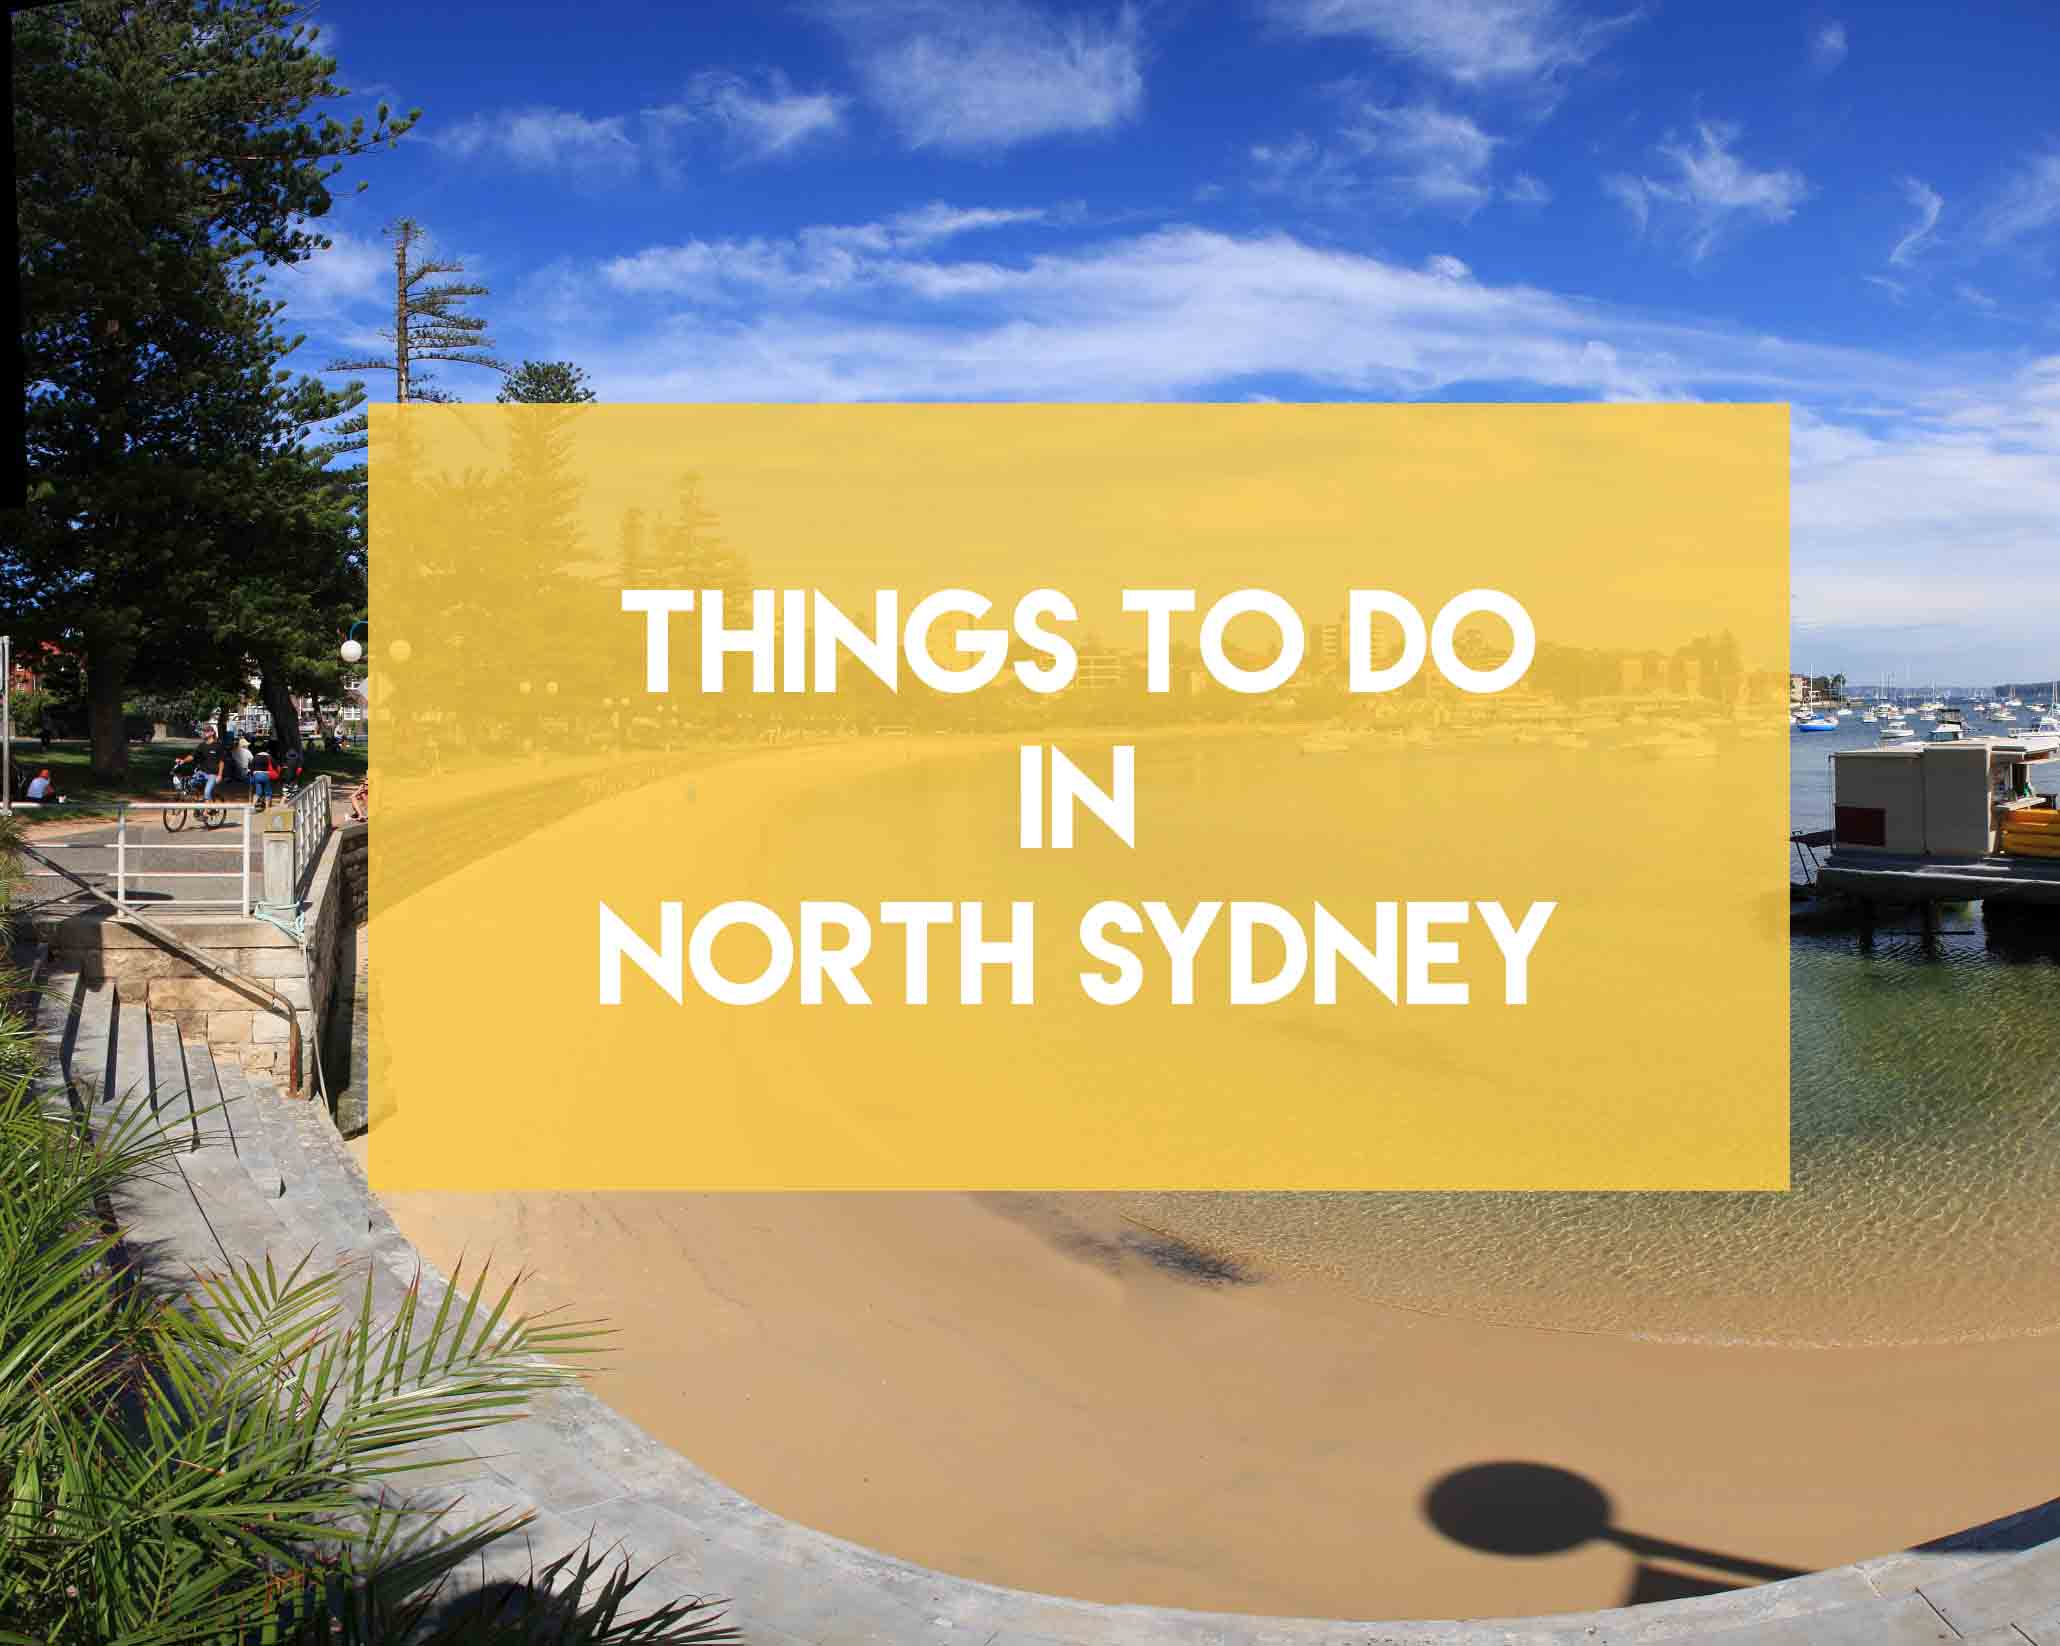 Things_to_do_north_sydney_world_travel_bound